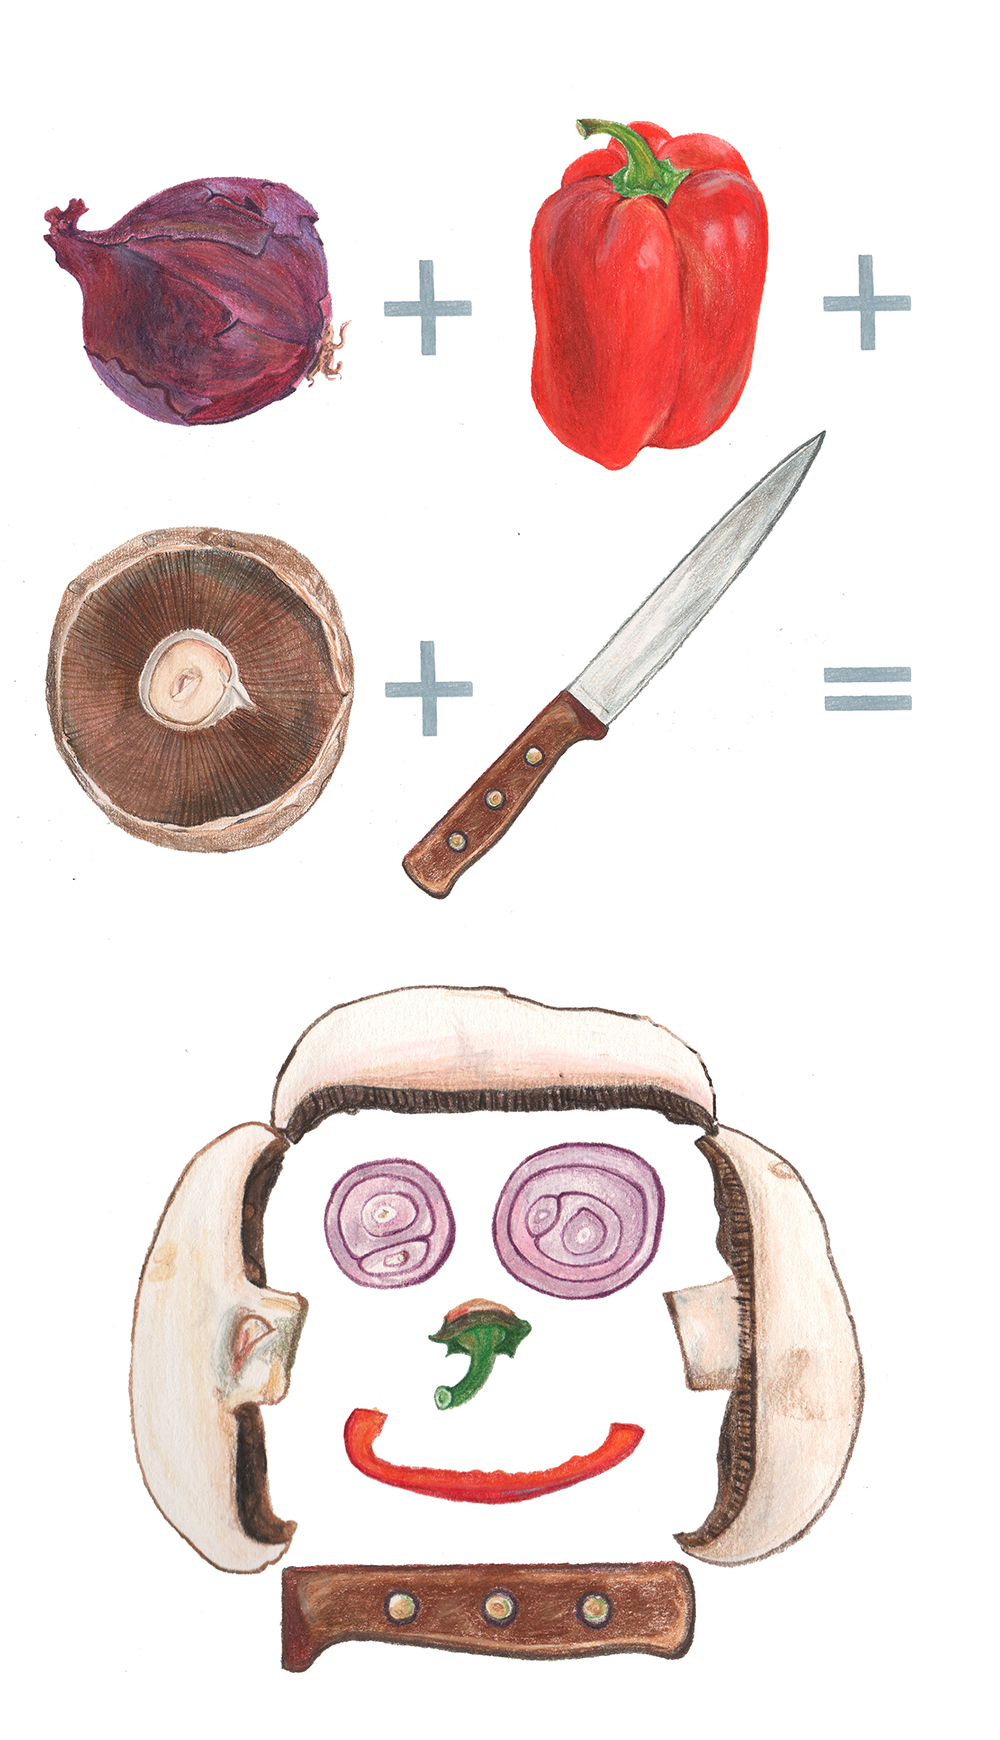 Onion+pepper+mushroom+knife=Dog_SM.jpg